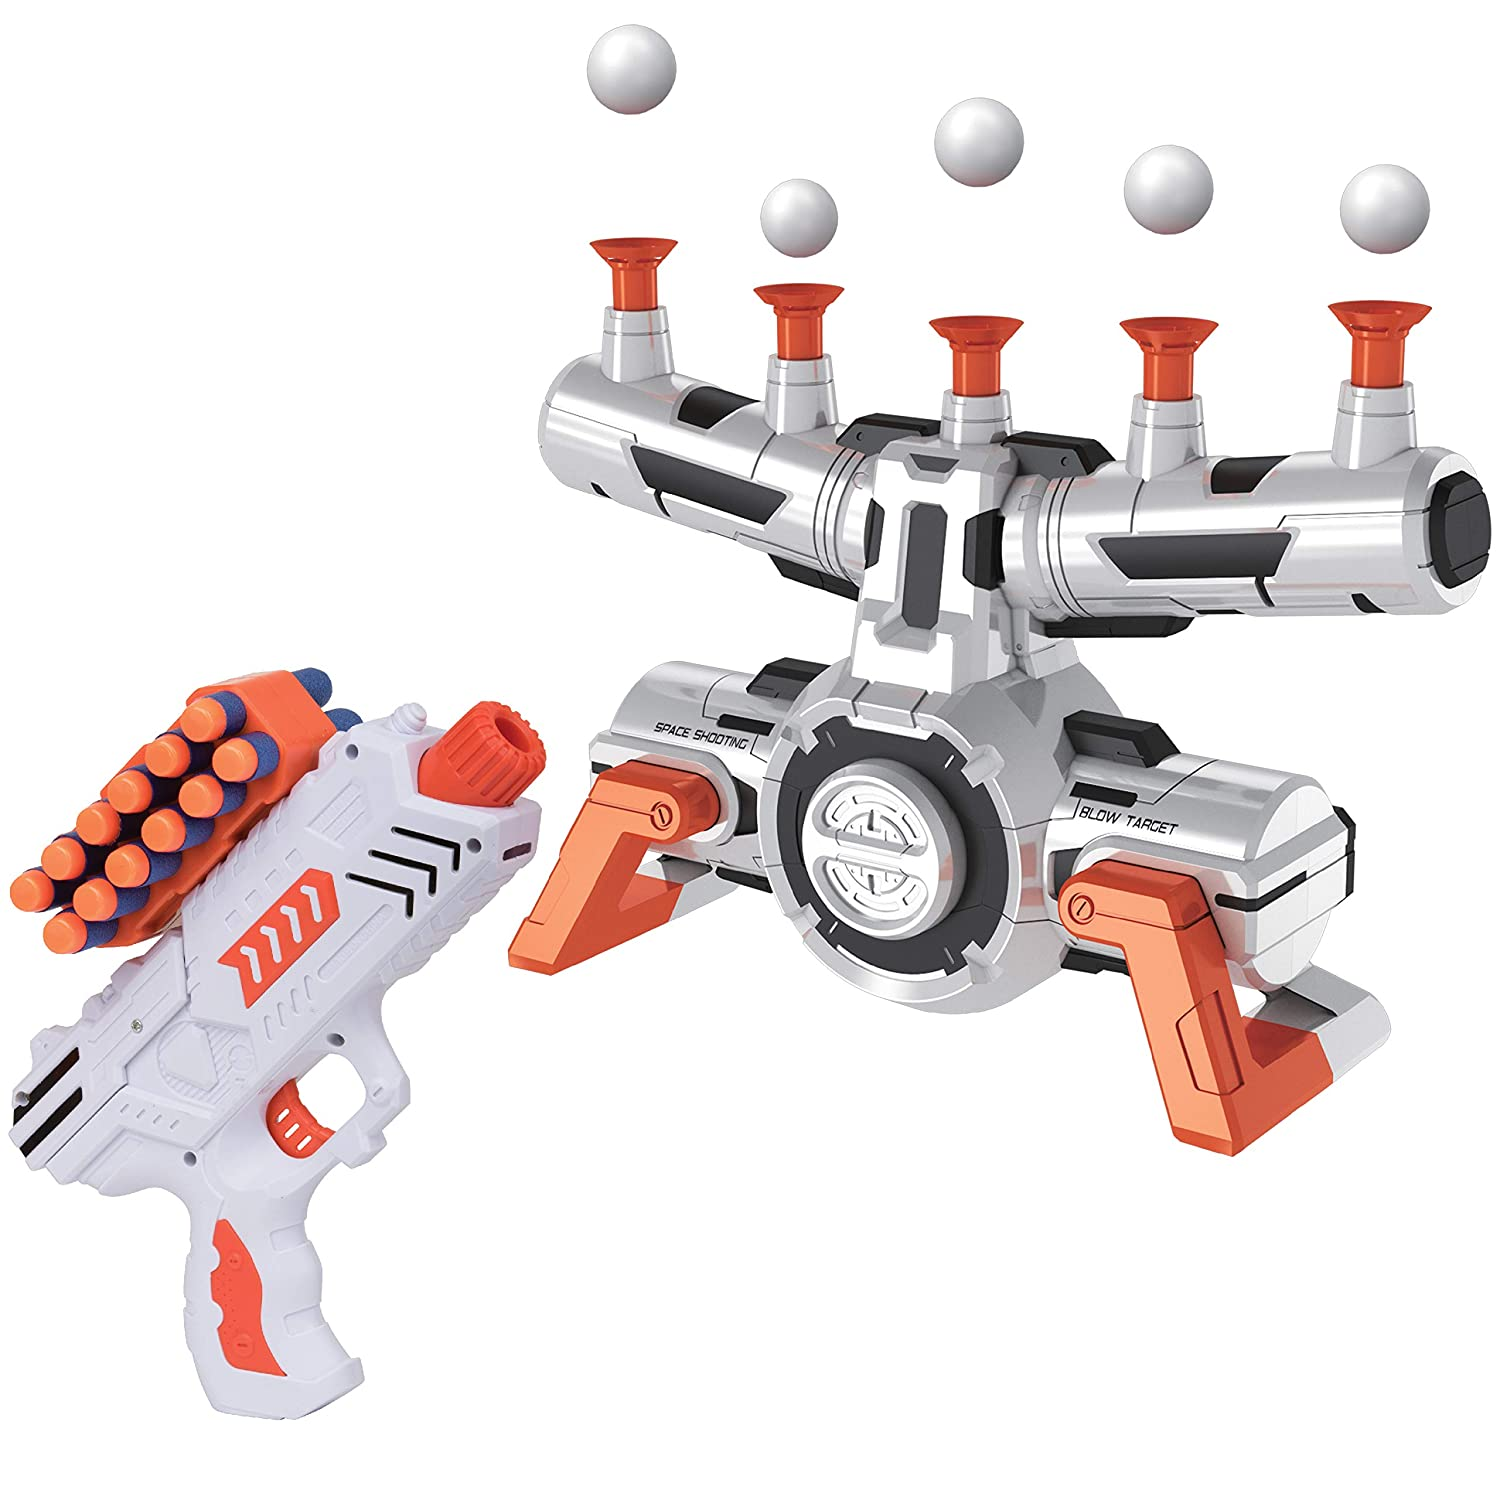 graphic regarding Nerf Gun Targets Printable identify United states Toyz Appropriate Nerf Aims for Capturing - AstroShot Zero G Floating Orbs Nerf Aim Train with Blaster Toy Guns for Boys or Gals and Foam